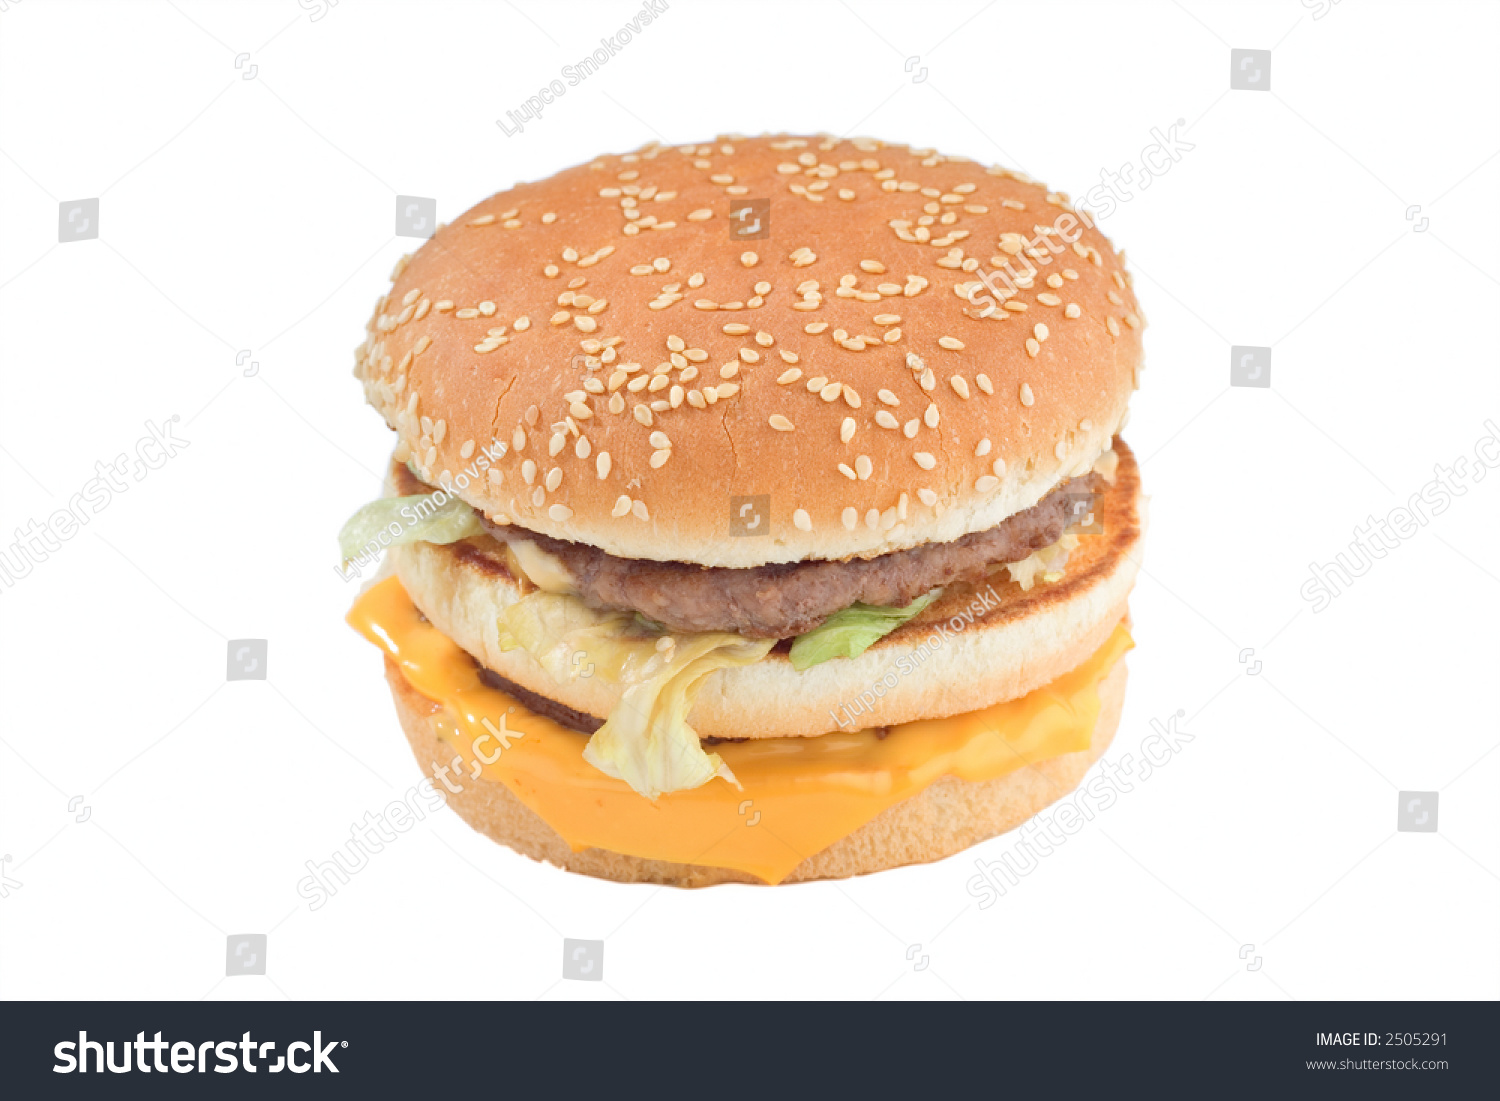 Close Up Of A Cheeseburger Isolated Against White Background Stock ...